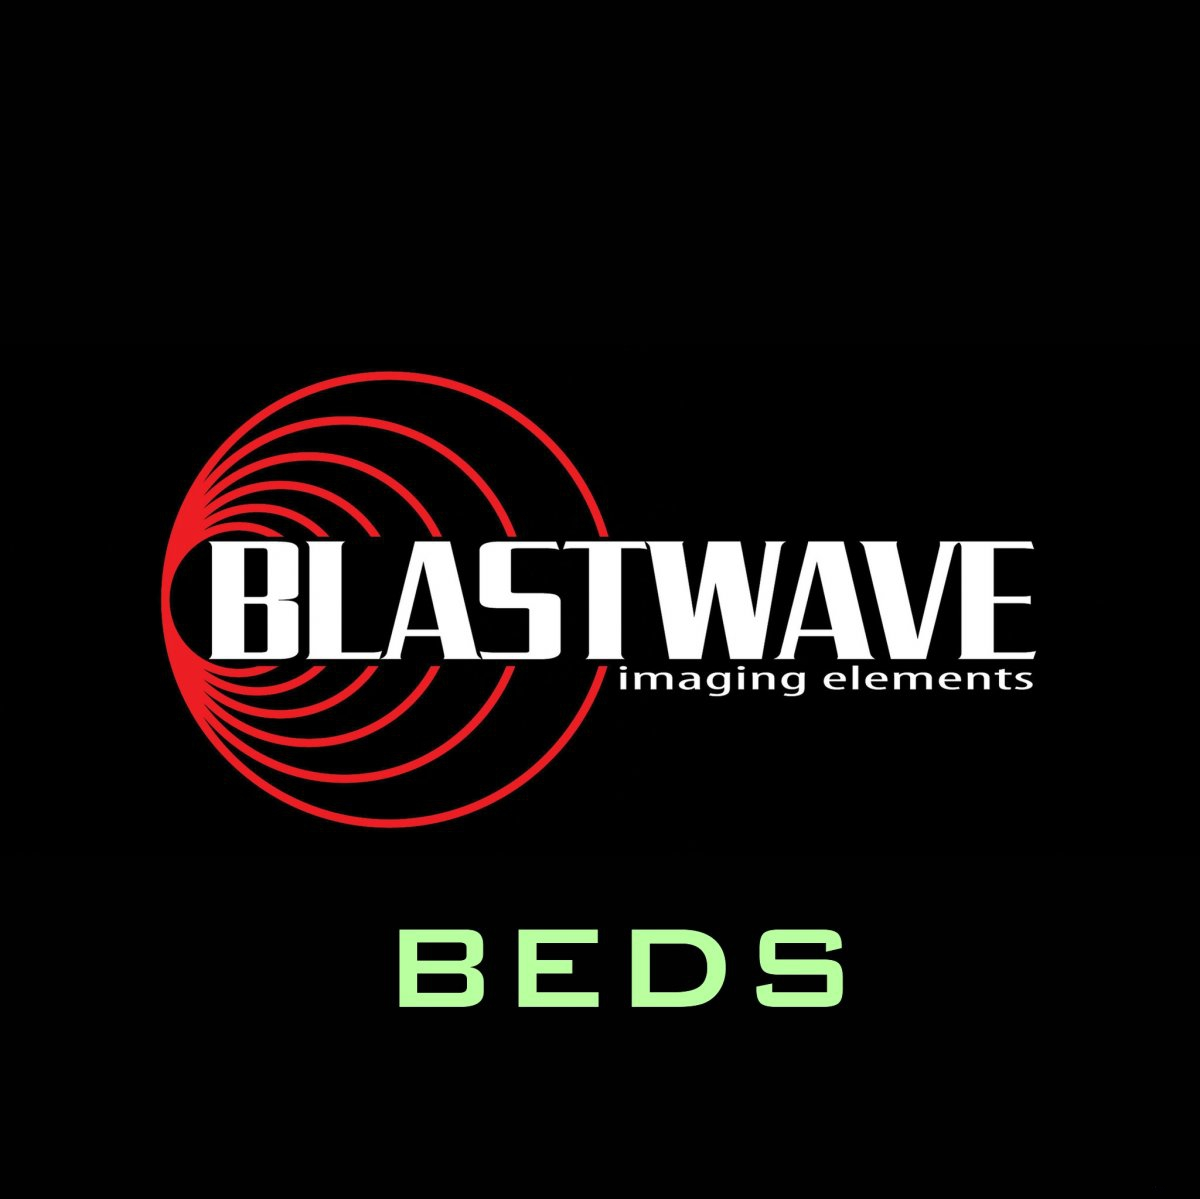 Blastwave Imaging Elements Beds ACID WAV